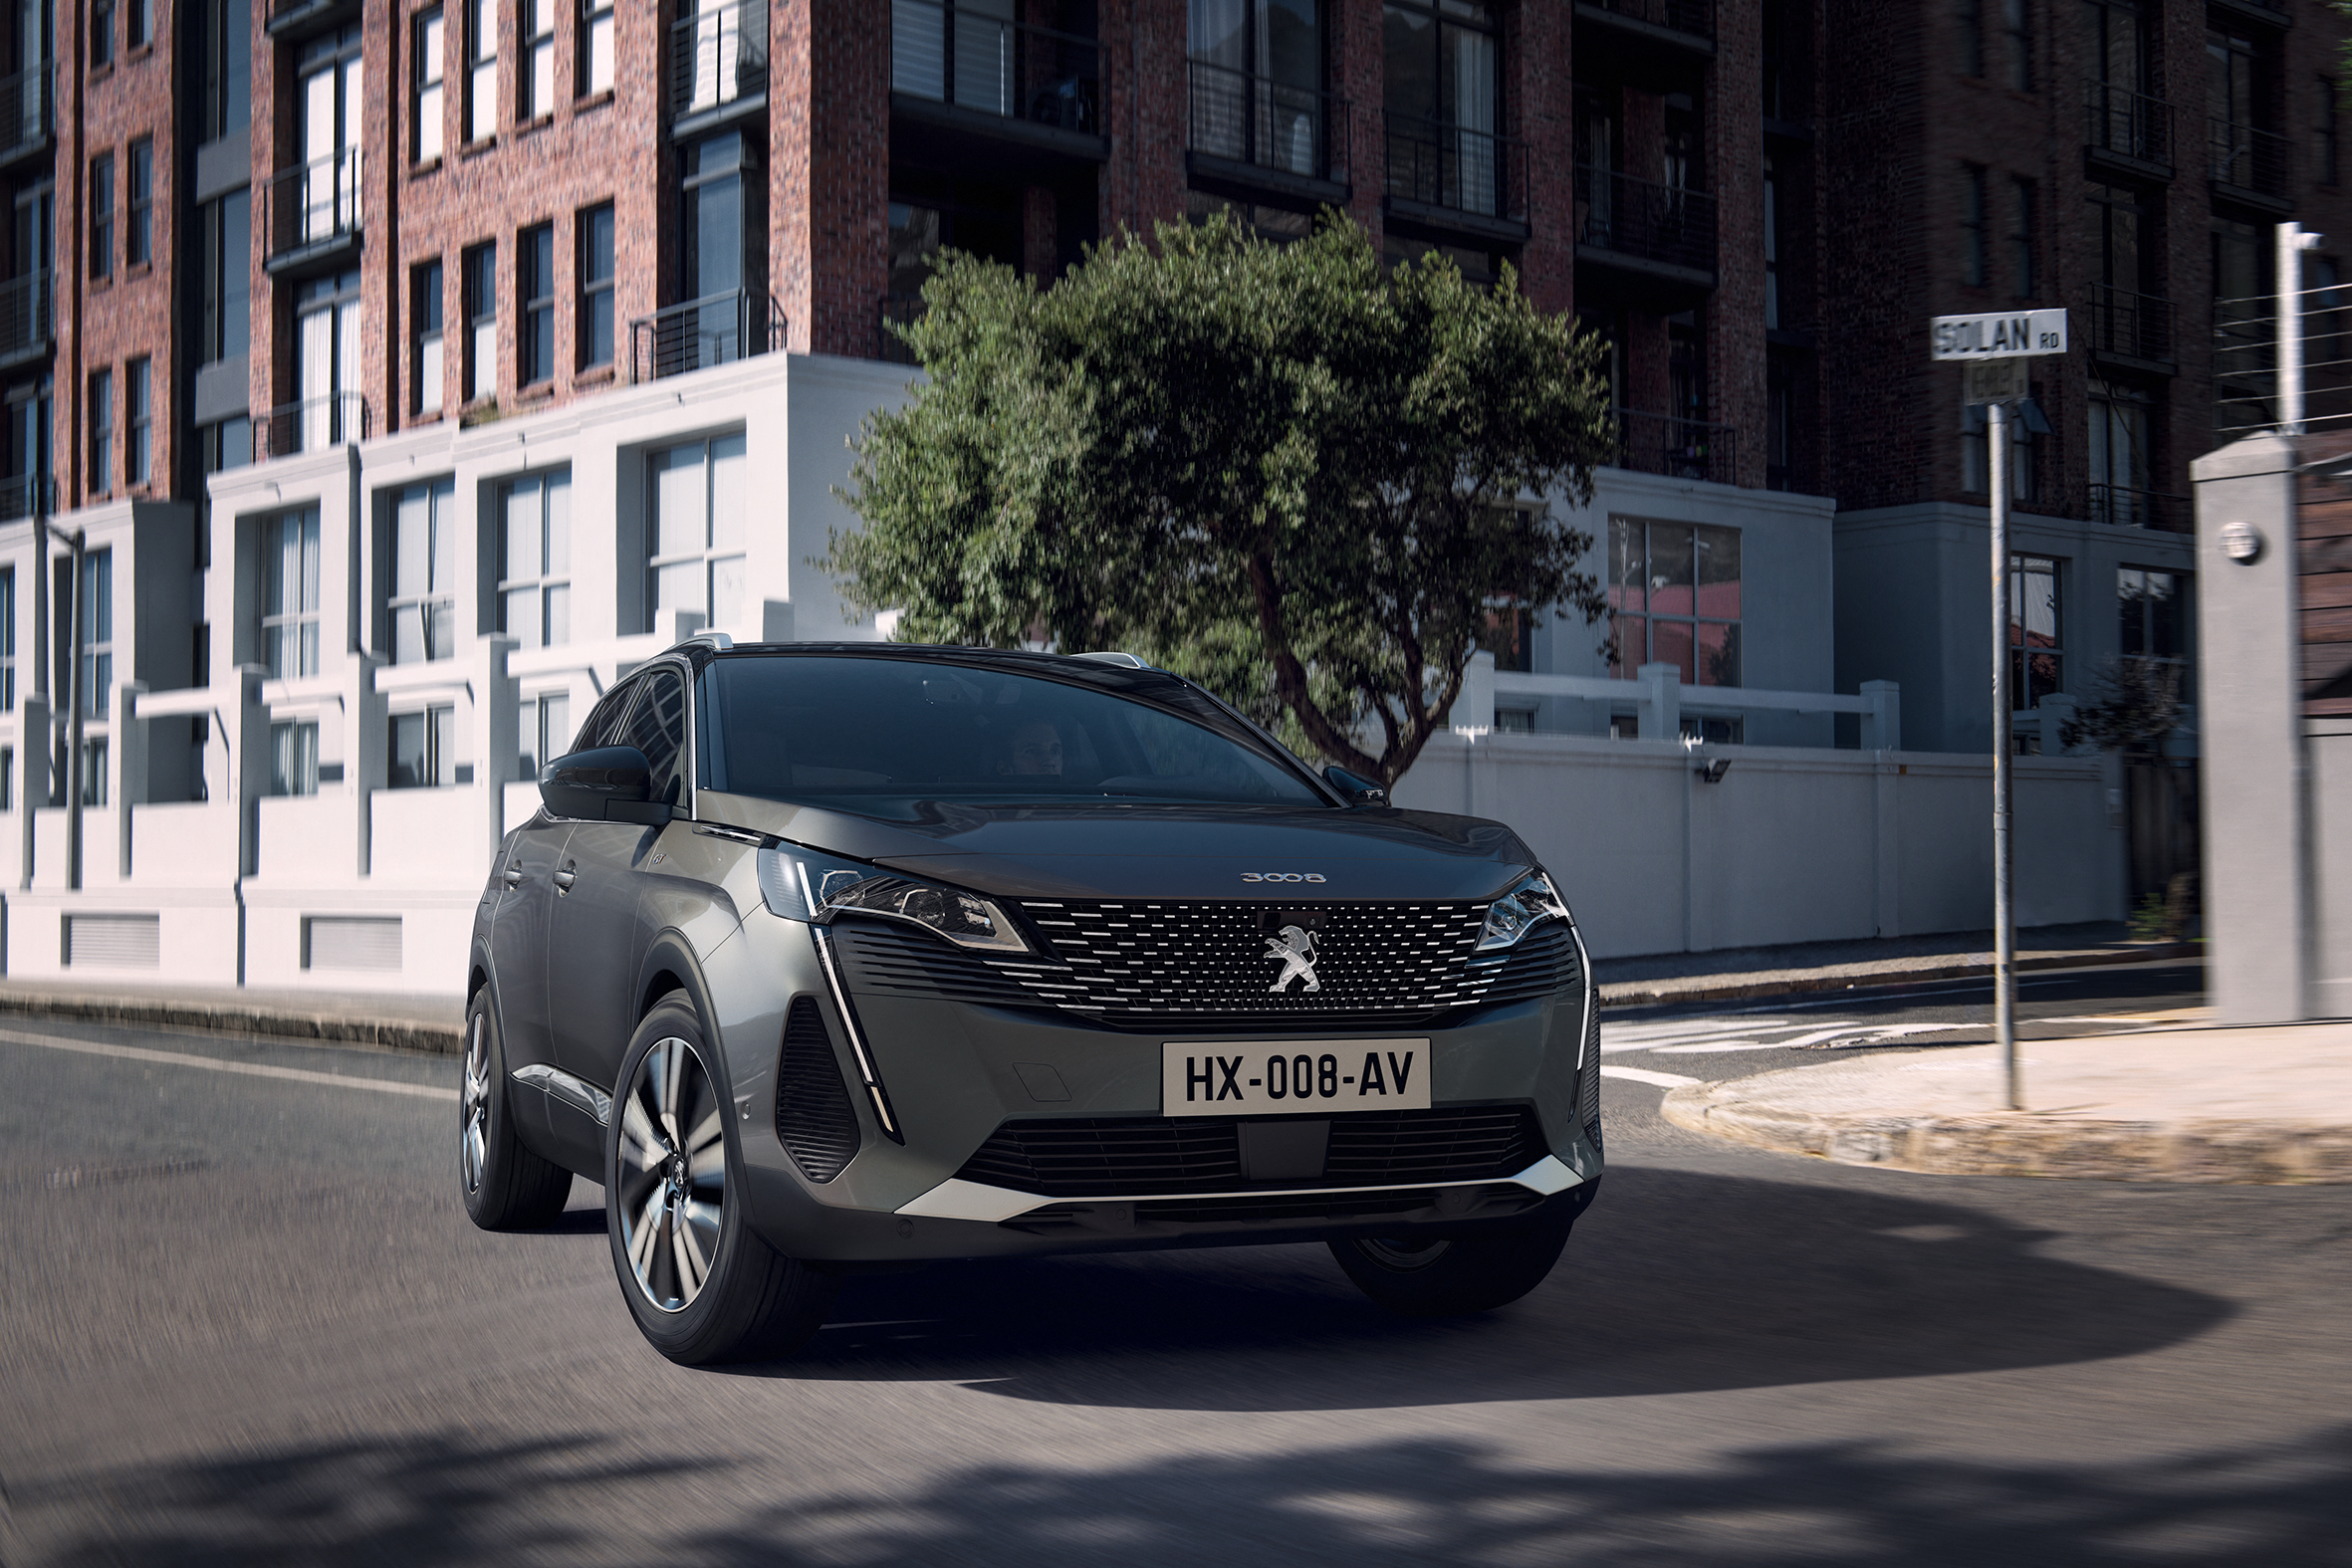 New 2020 Peugeot 3008 facelift: UK prices confirmed